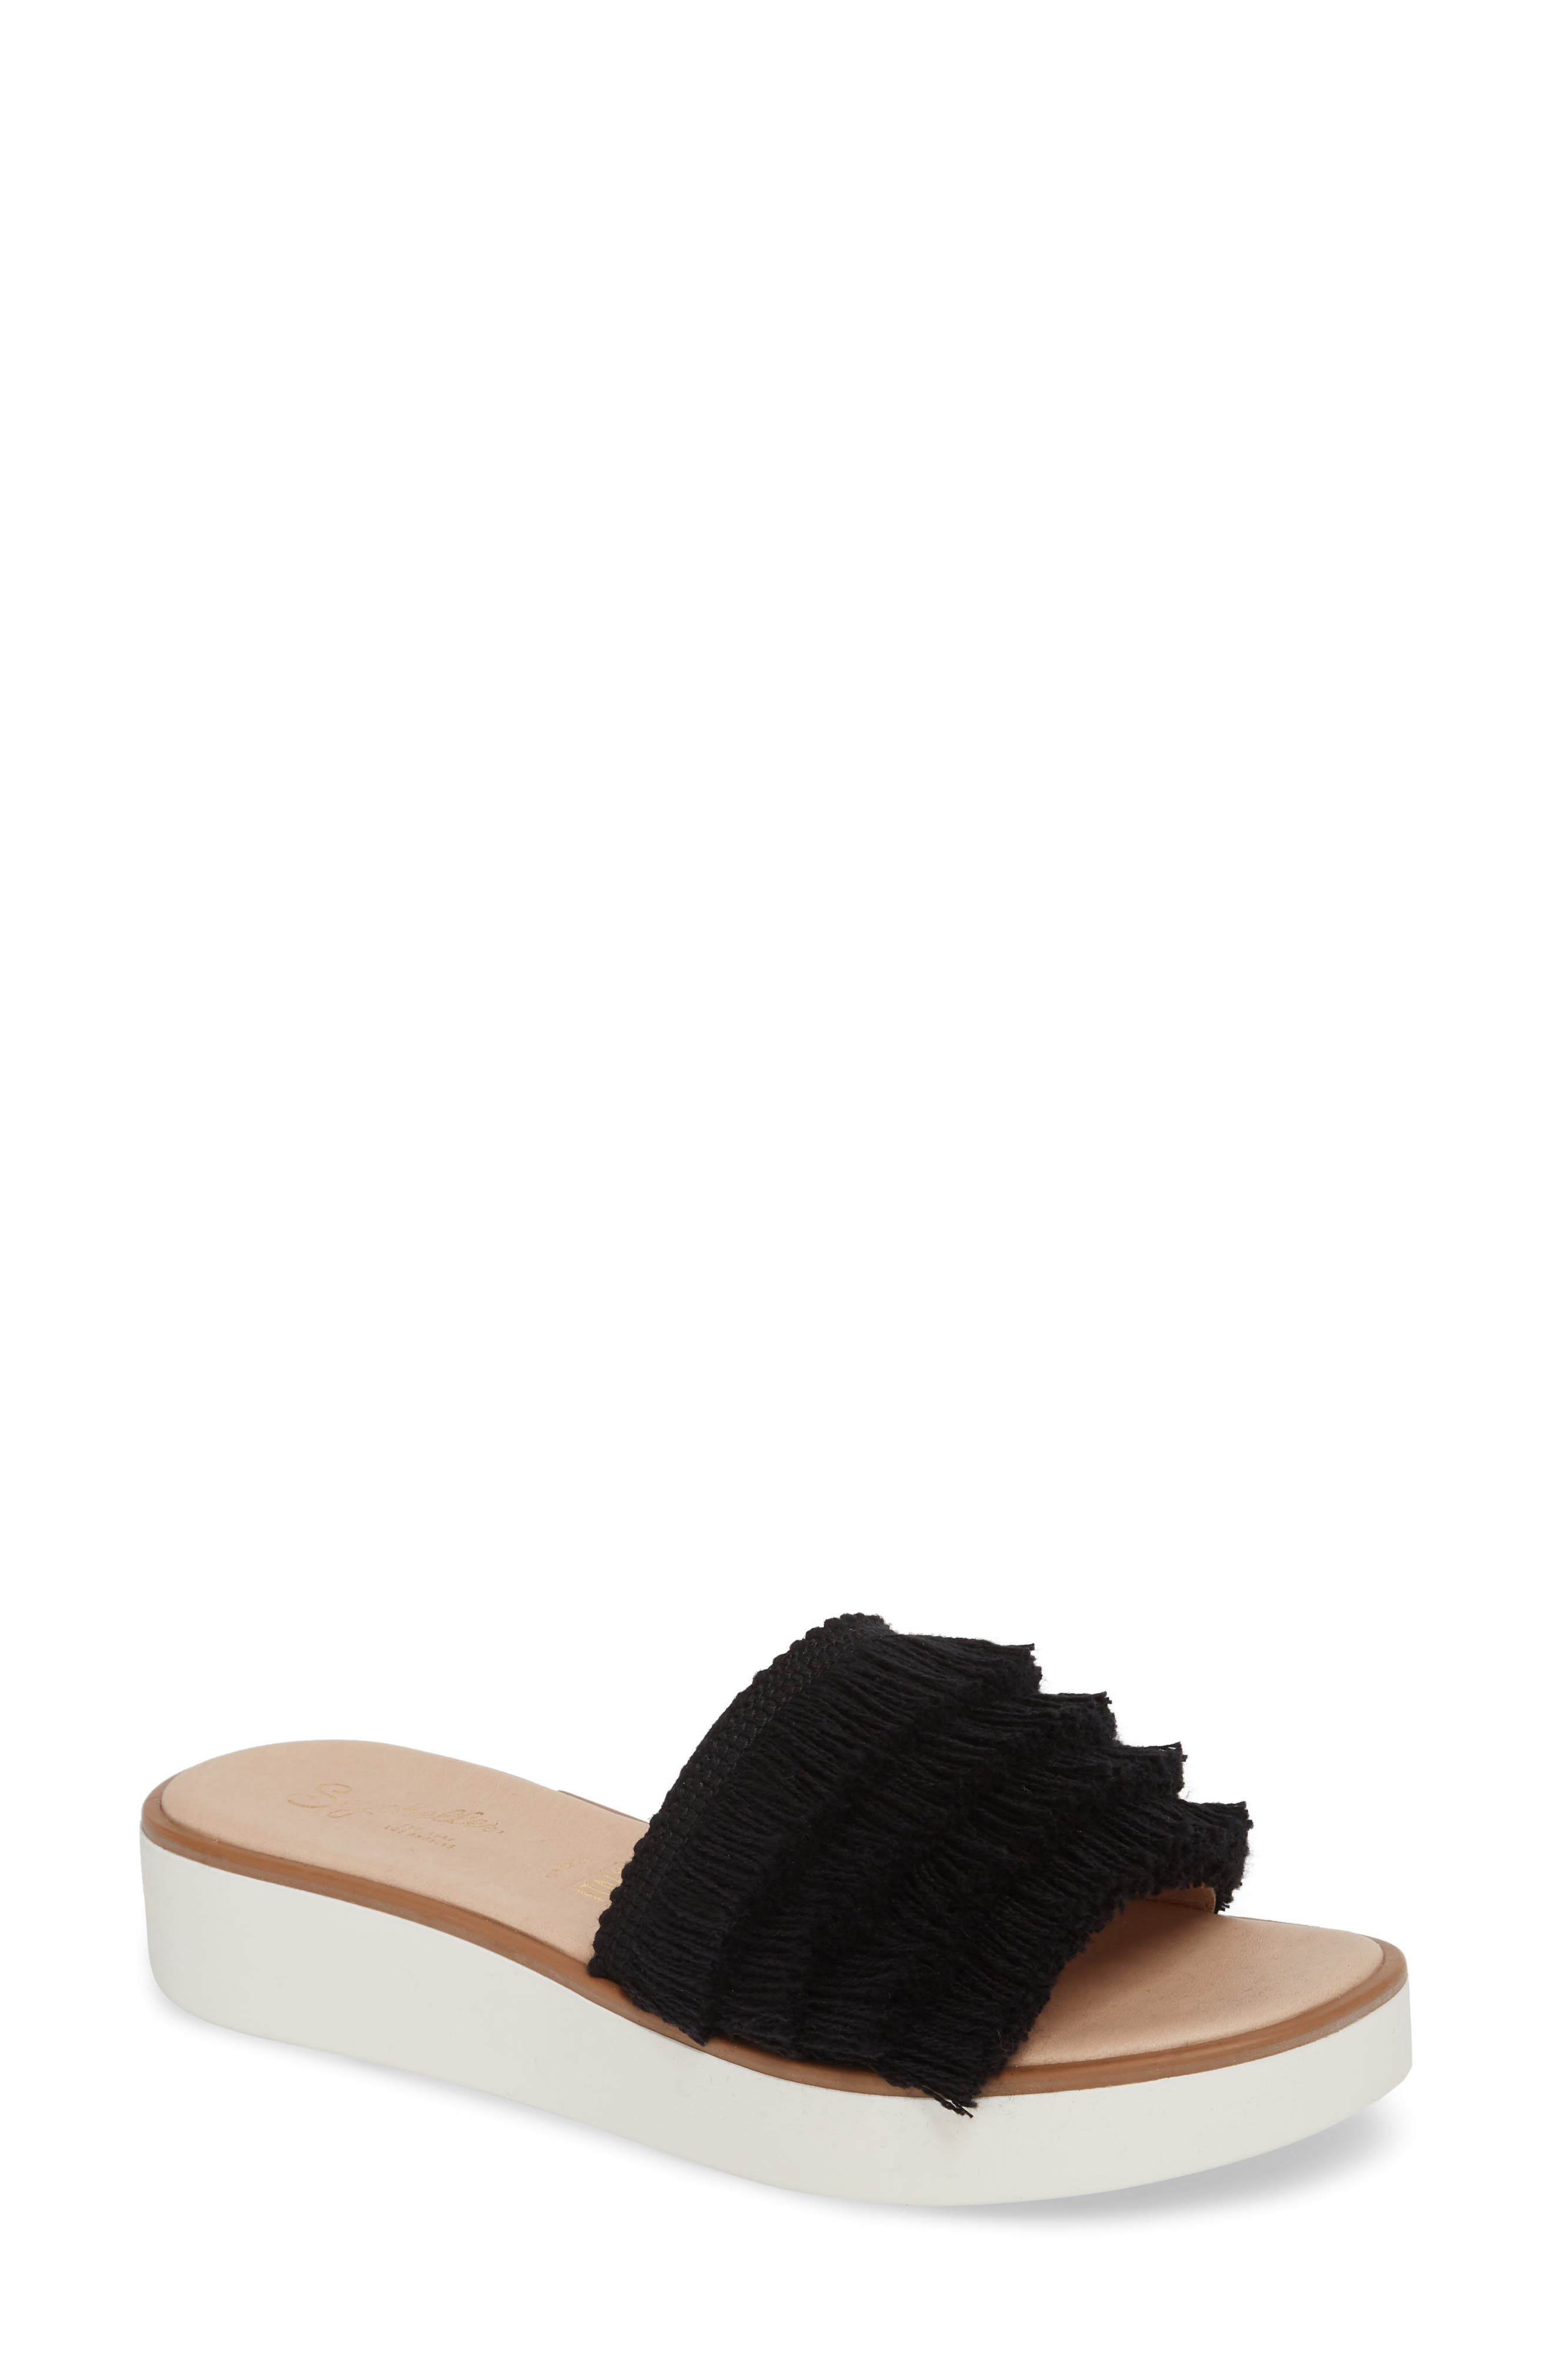 Well Rested Ruffle Slide Sandal,                         Main,                         color, Black Fabric